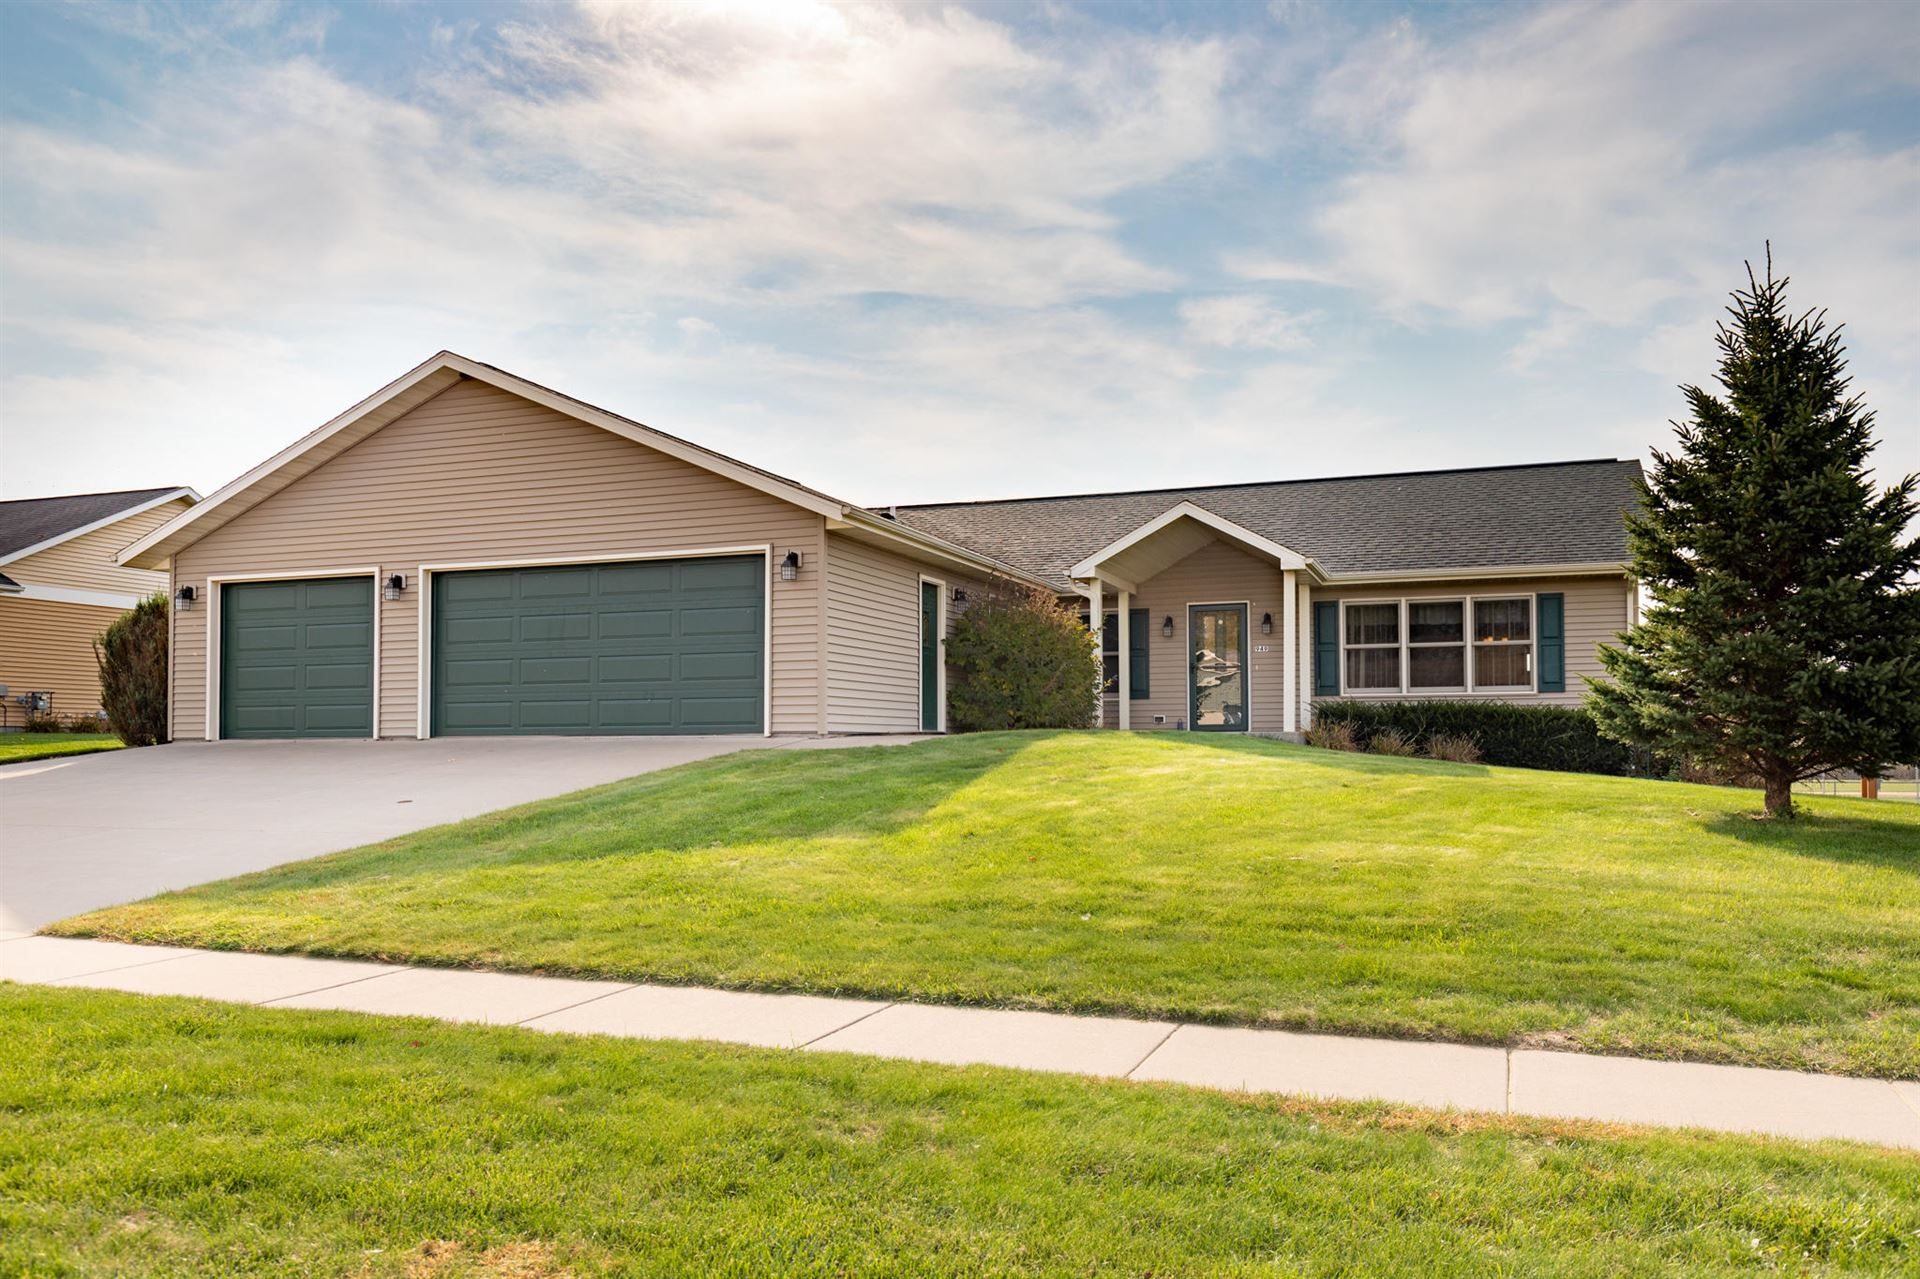 949 MEADOW VIEW ST, Bangor, WI 54614 - MLS#: 1713747